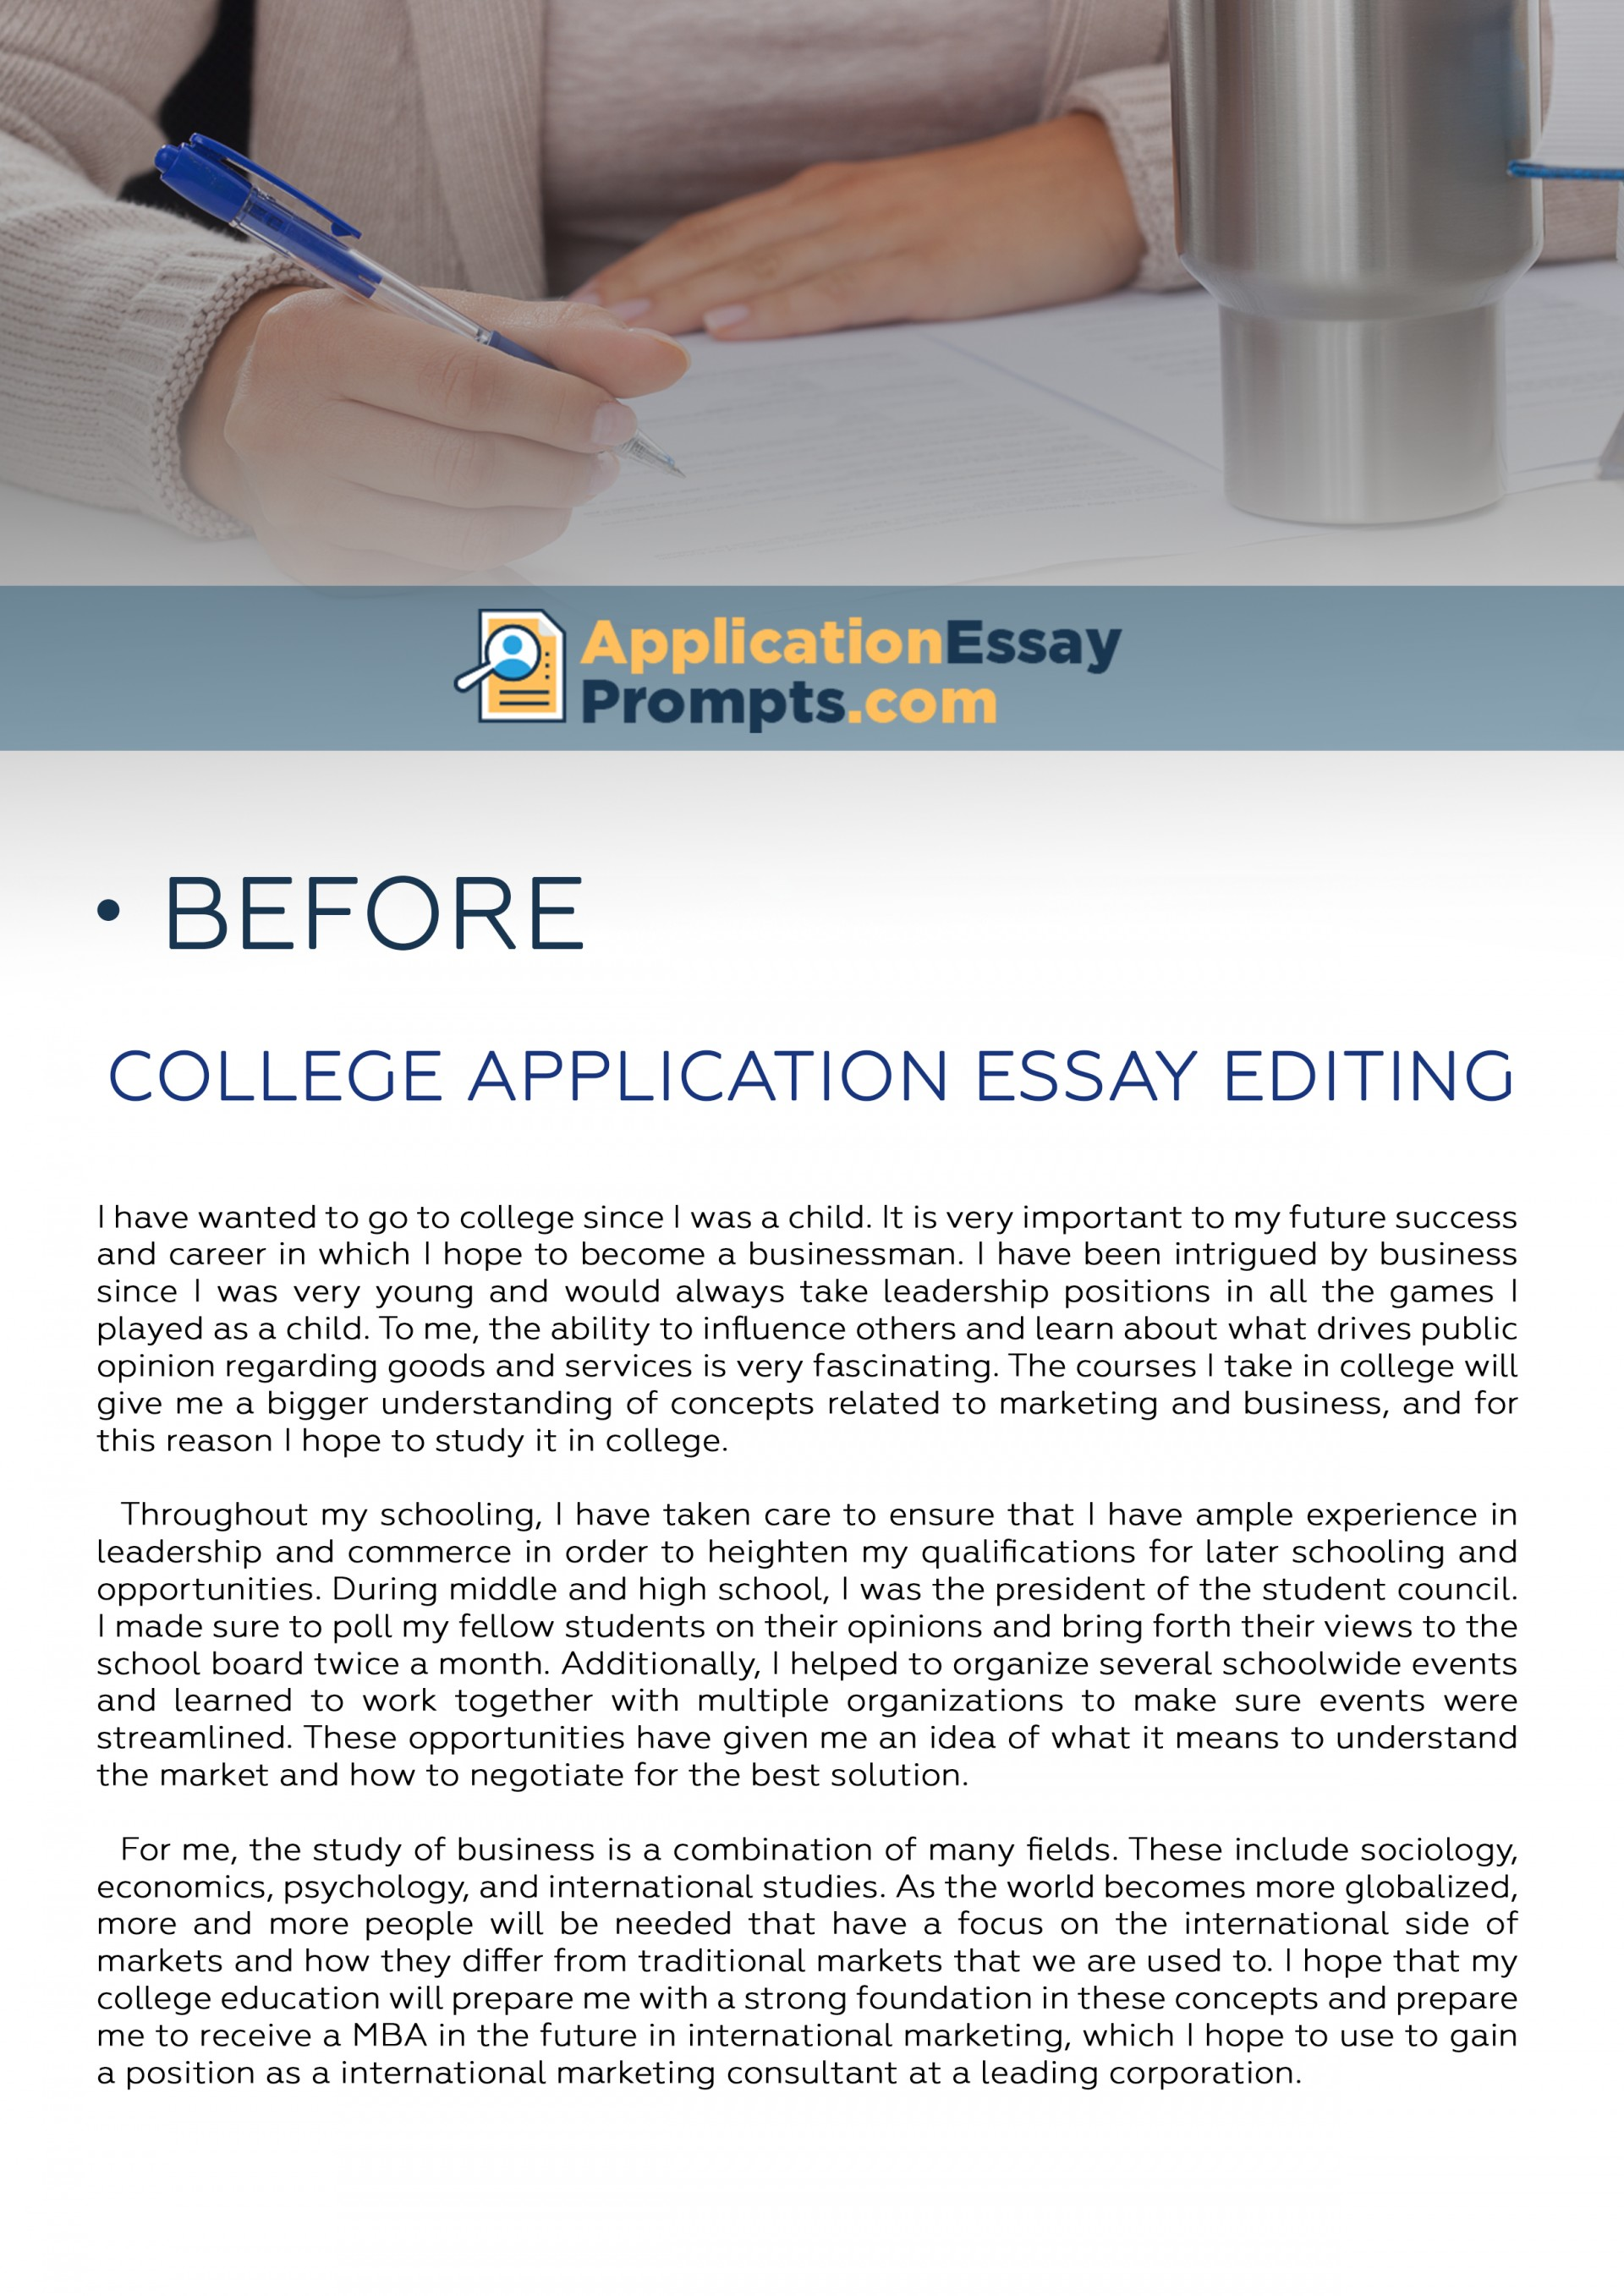 019 College Essay Editing Before Amazing Best Services Application Free Checklist 1920